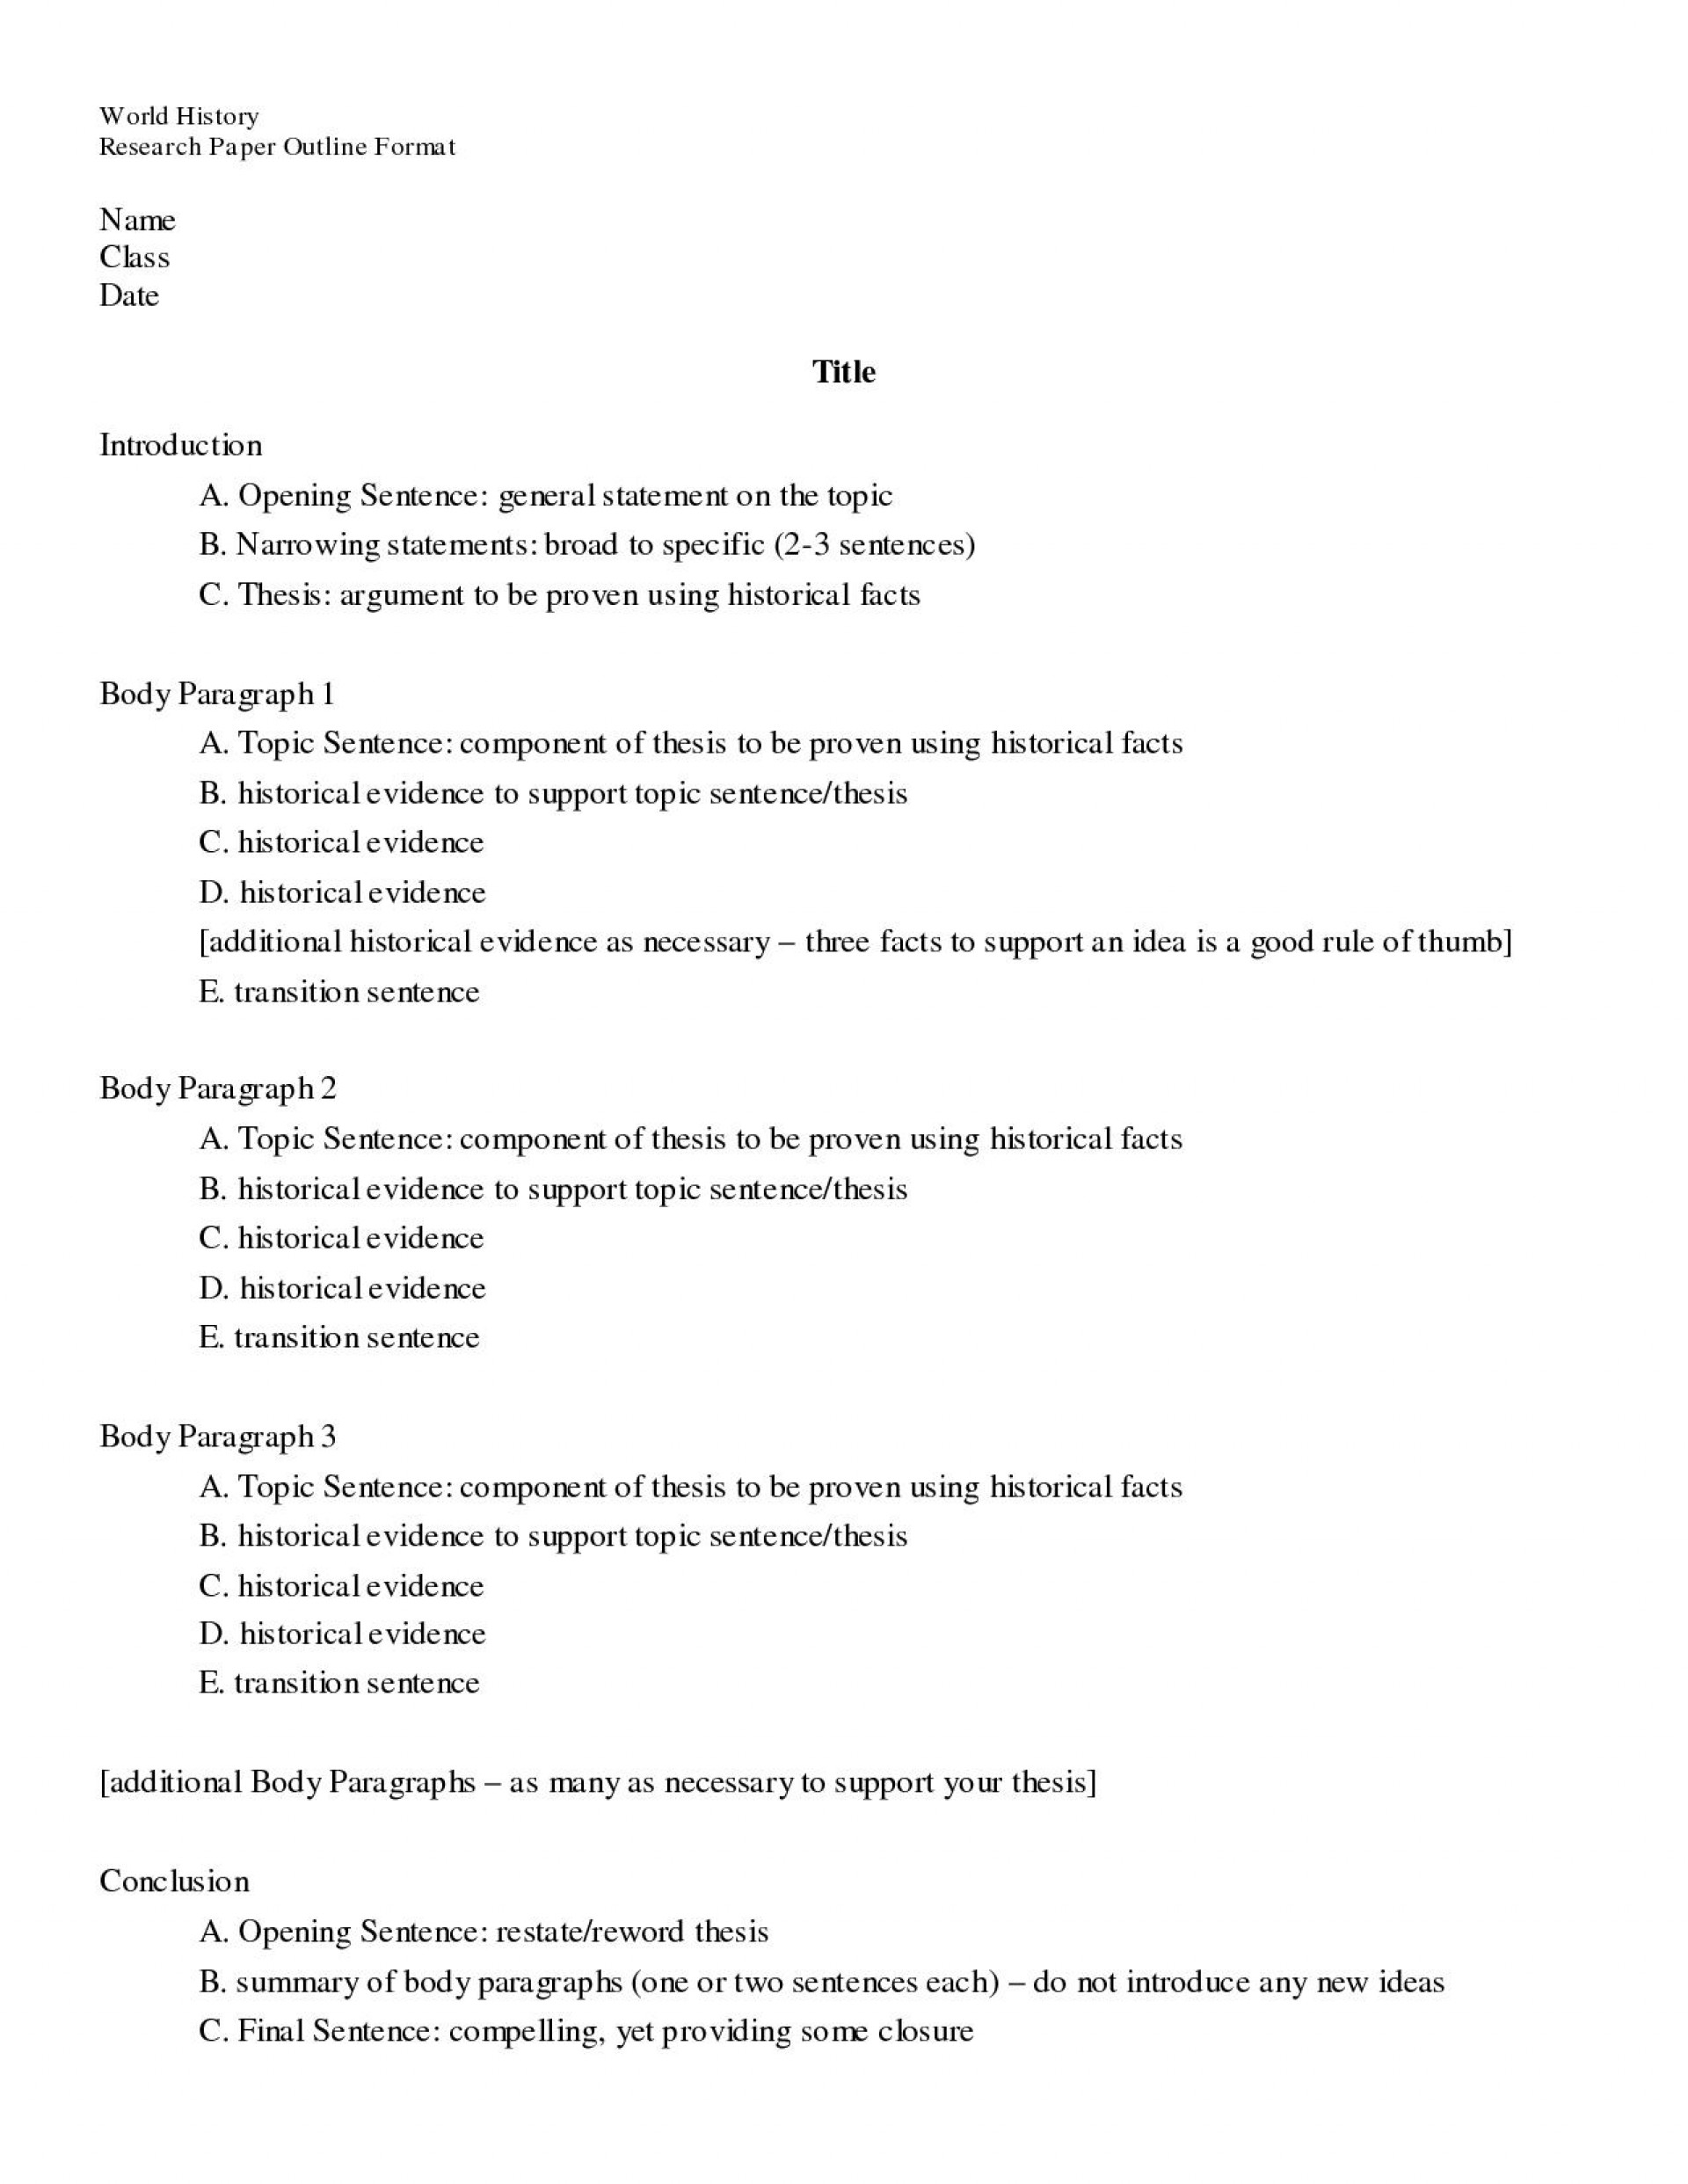 015 Biology Research Paper Sample Outline Remarkable Format Example 1920